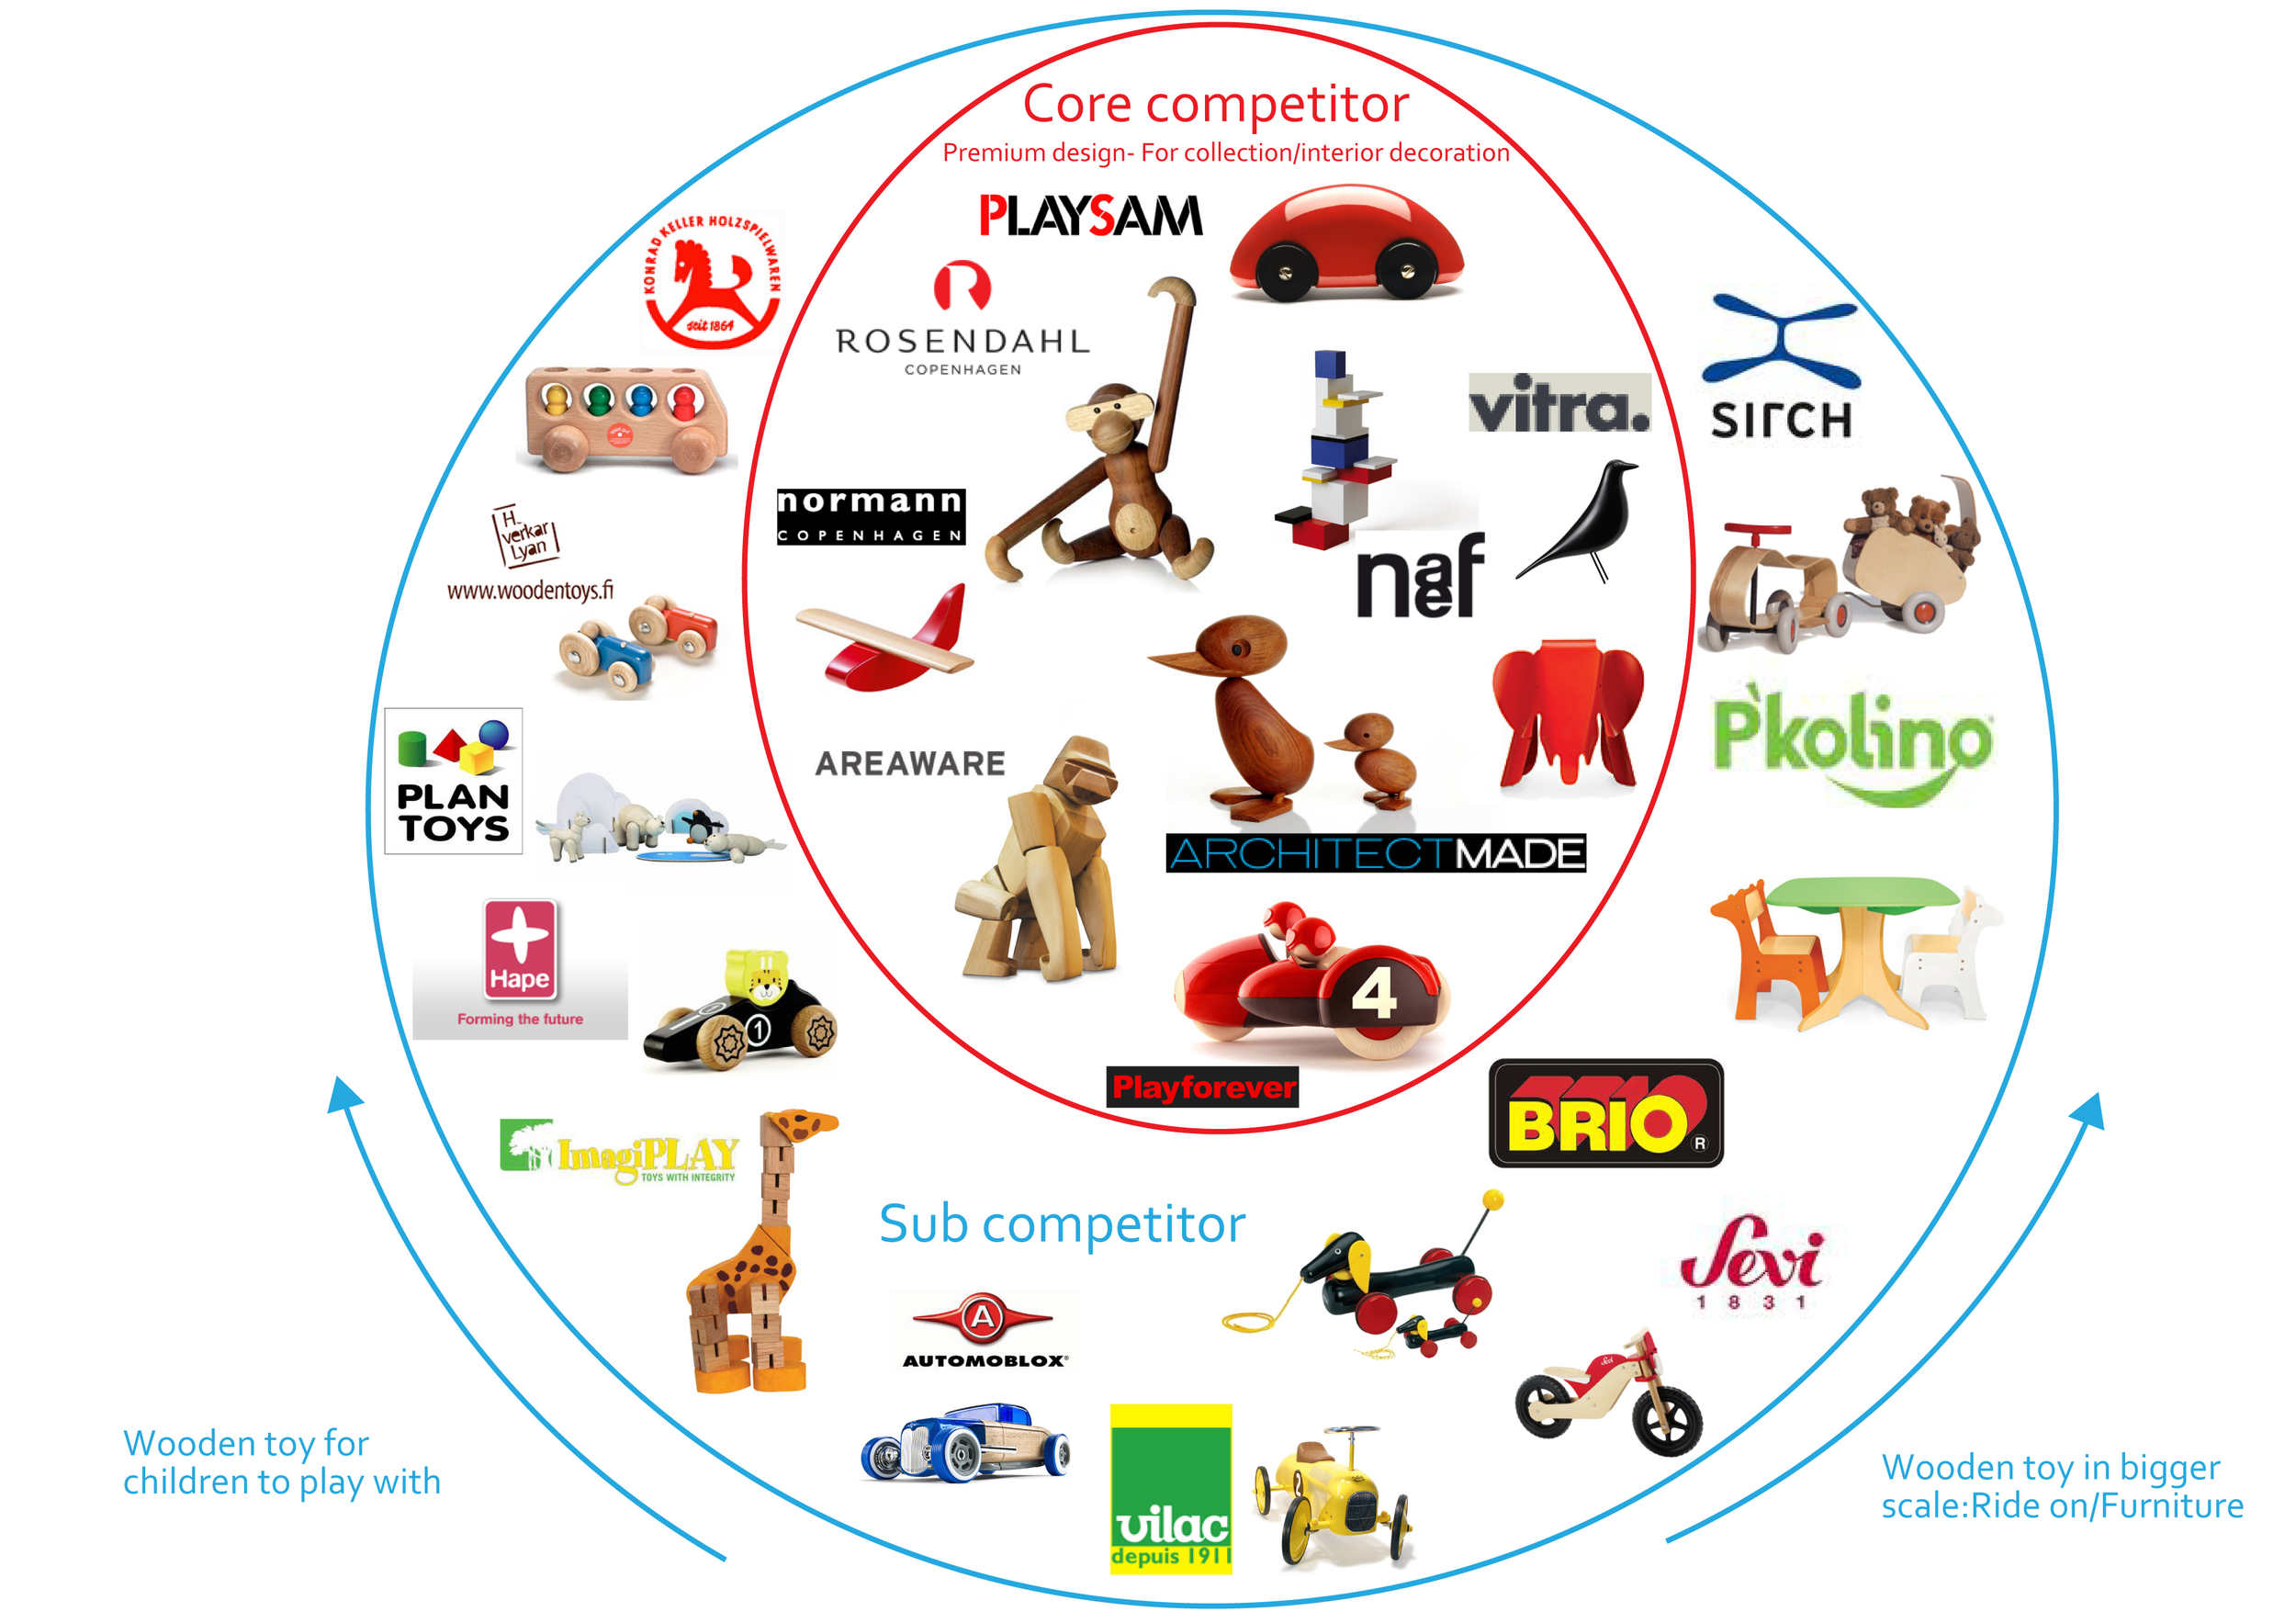 Competitor Analysis  : The inner circle are the main competitors which are wooden, designed, high-end collection of toys